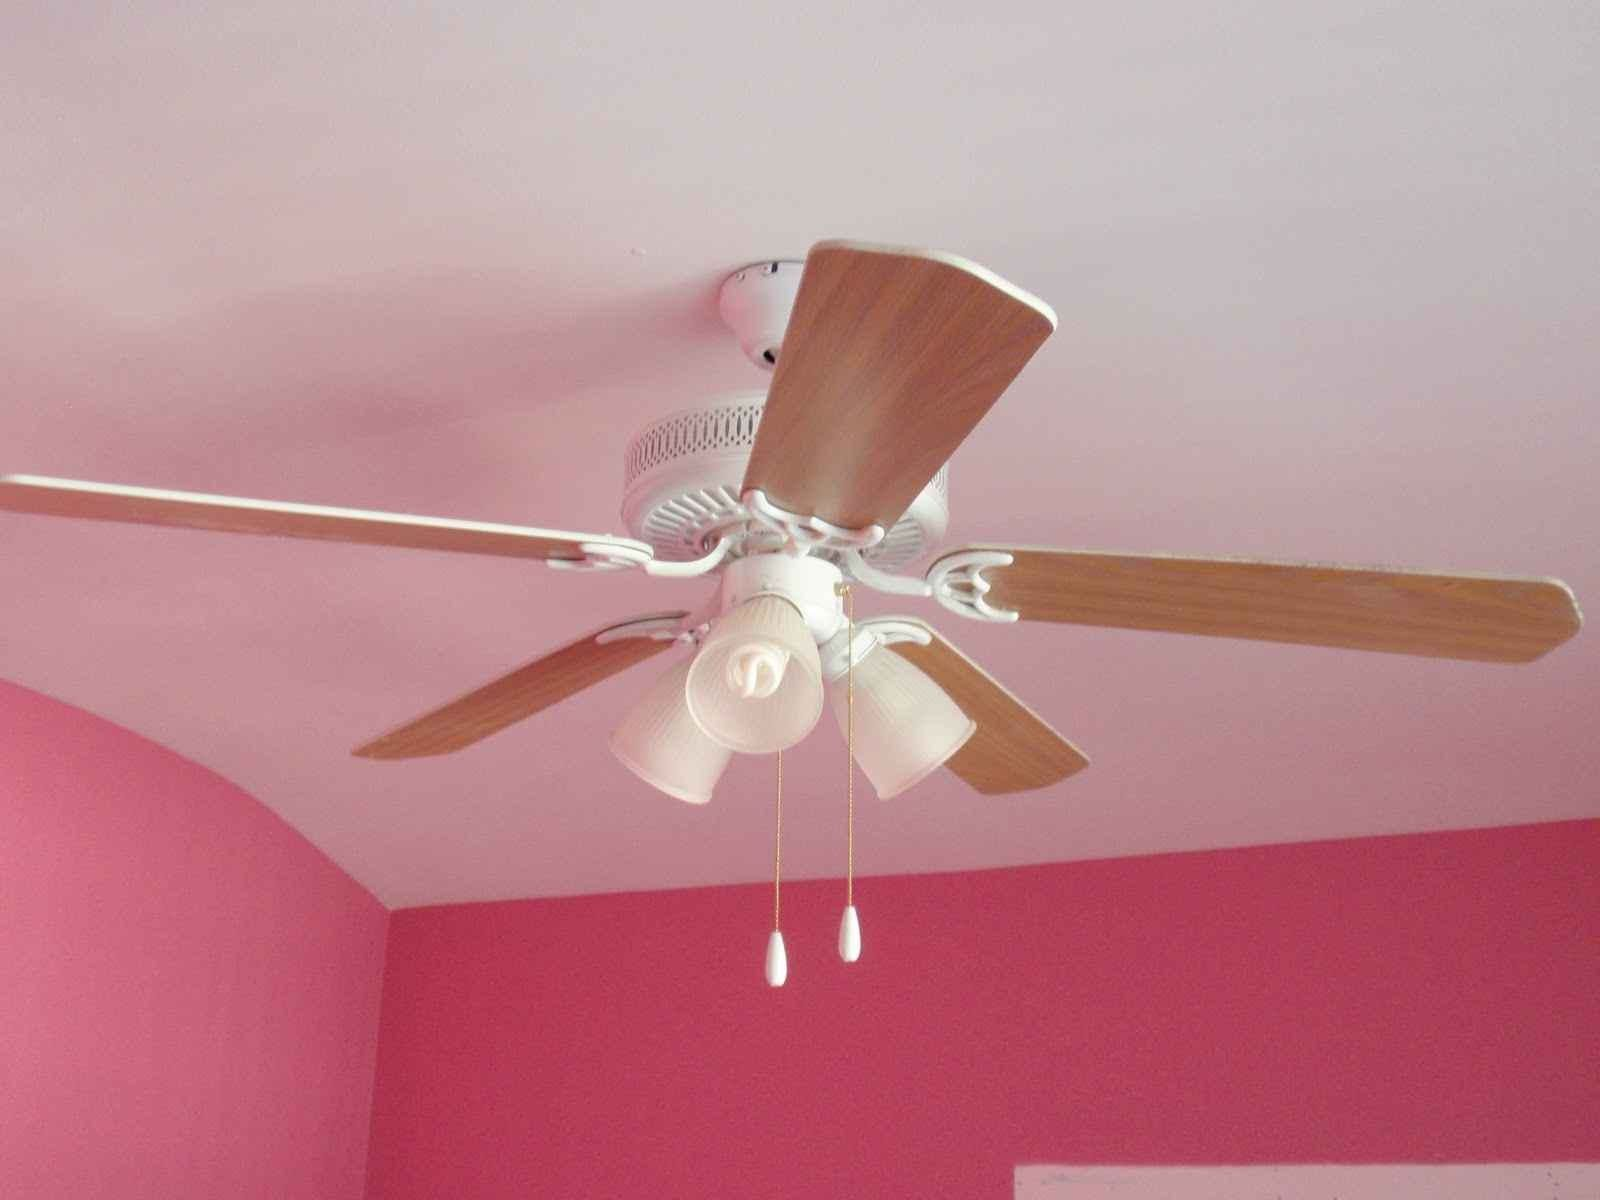 ceiling on mount fixtures sloped fan light fixture uk destiny adapter pink flush angledd slanted jalepink with